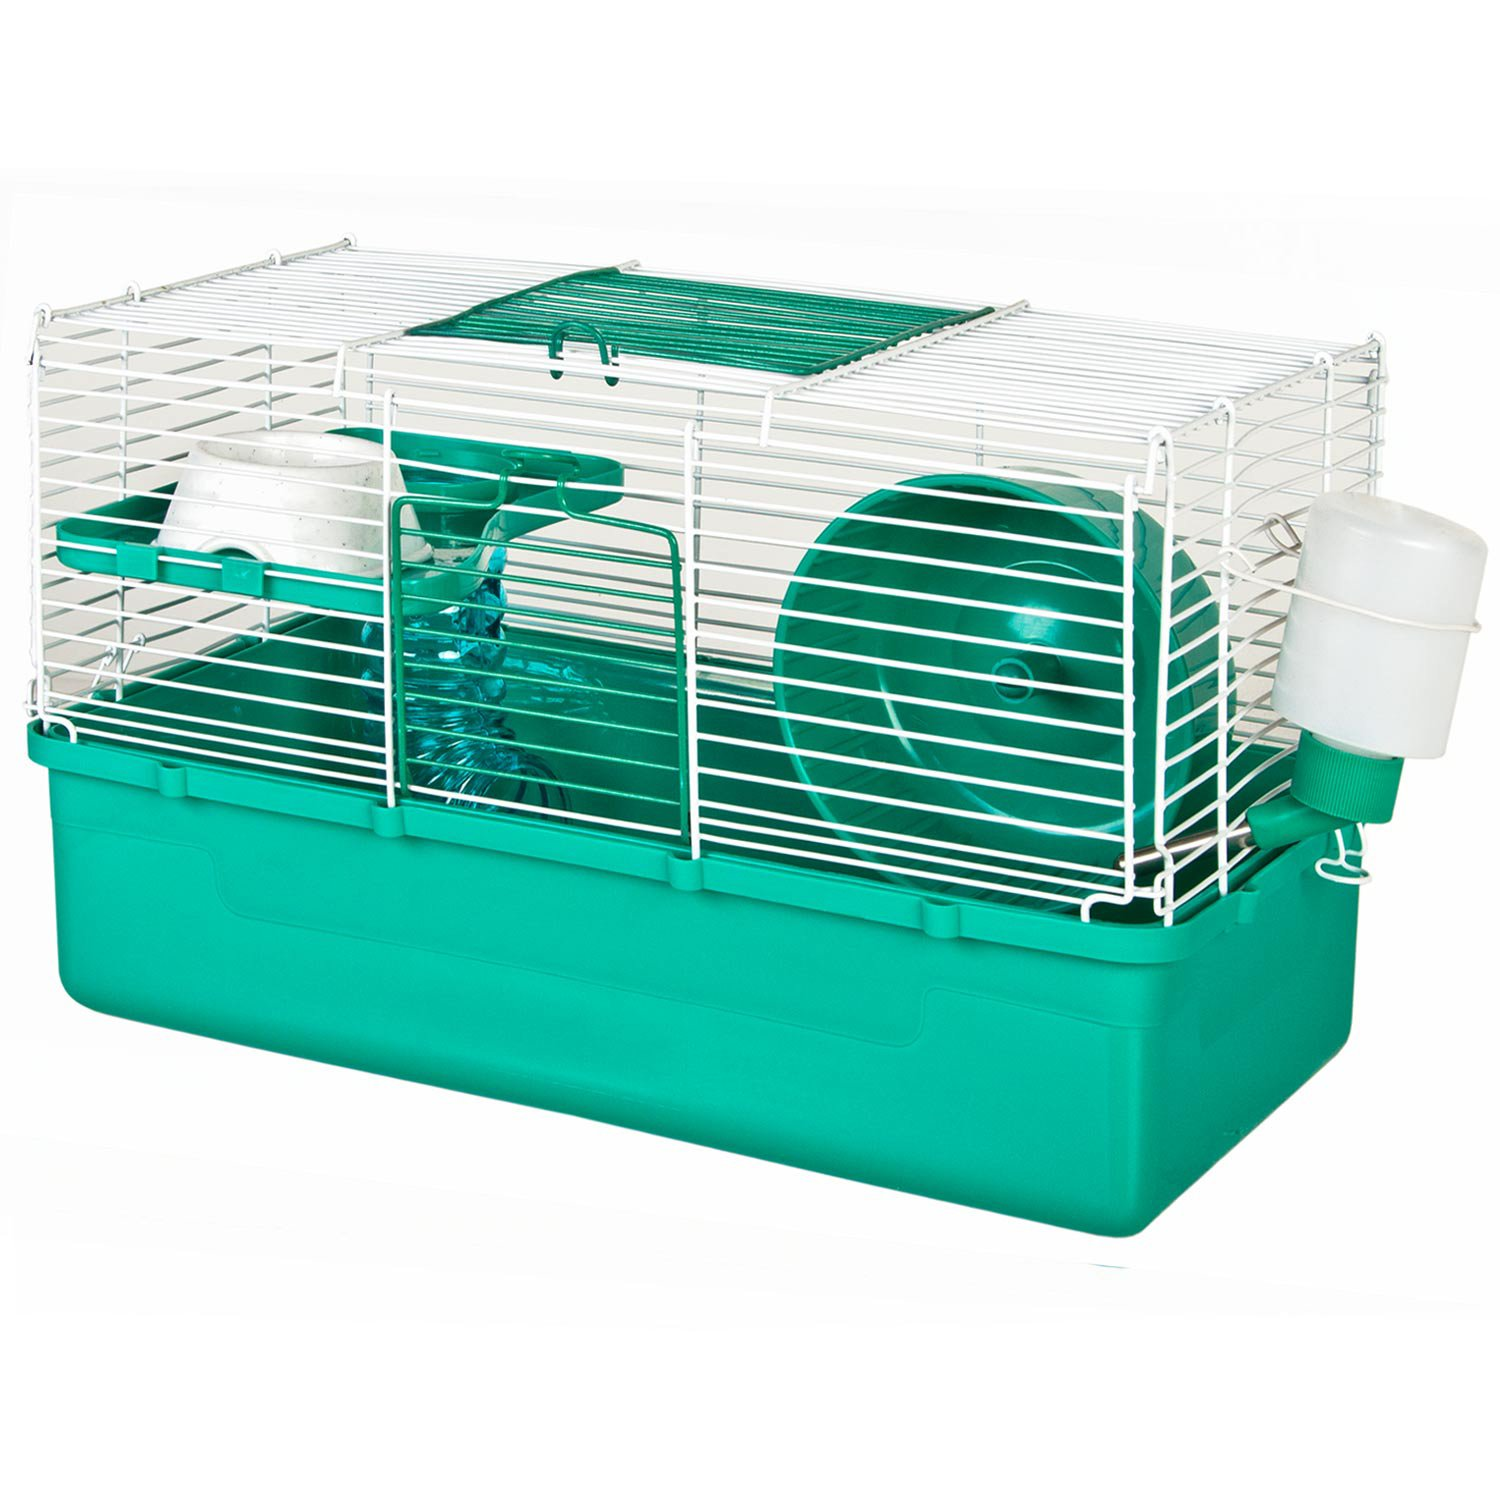 WARE Home Sweet Home Teal 1 Story Hamster Cage Pet cage